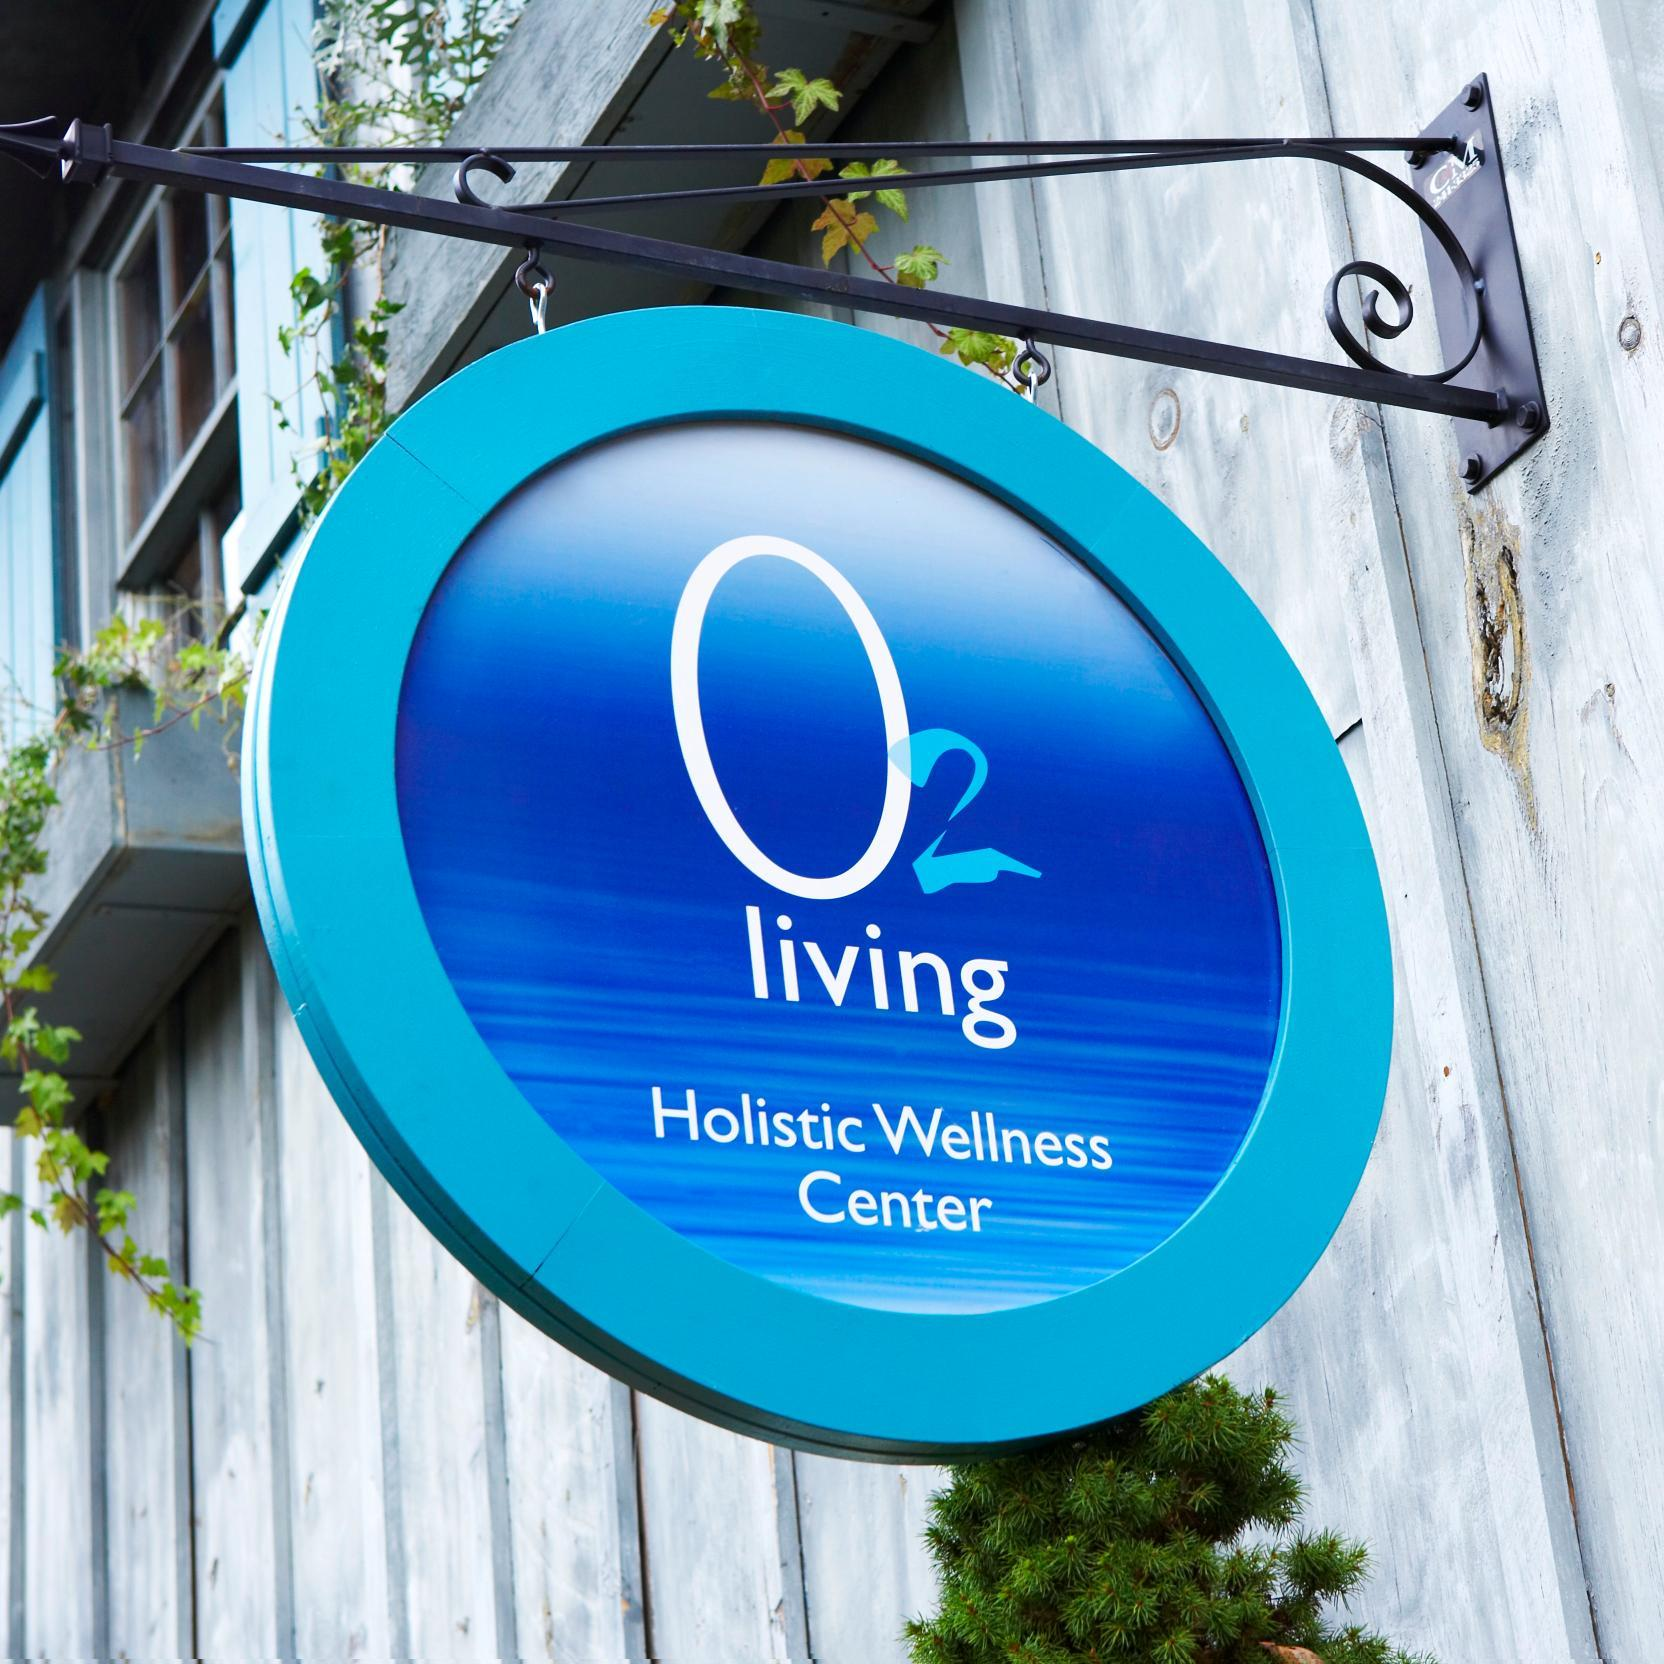 Flood Creative Receives American Graphic Design Award for its Work with o2living